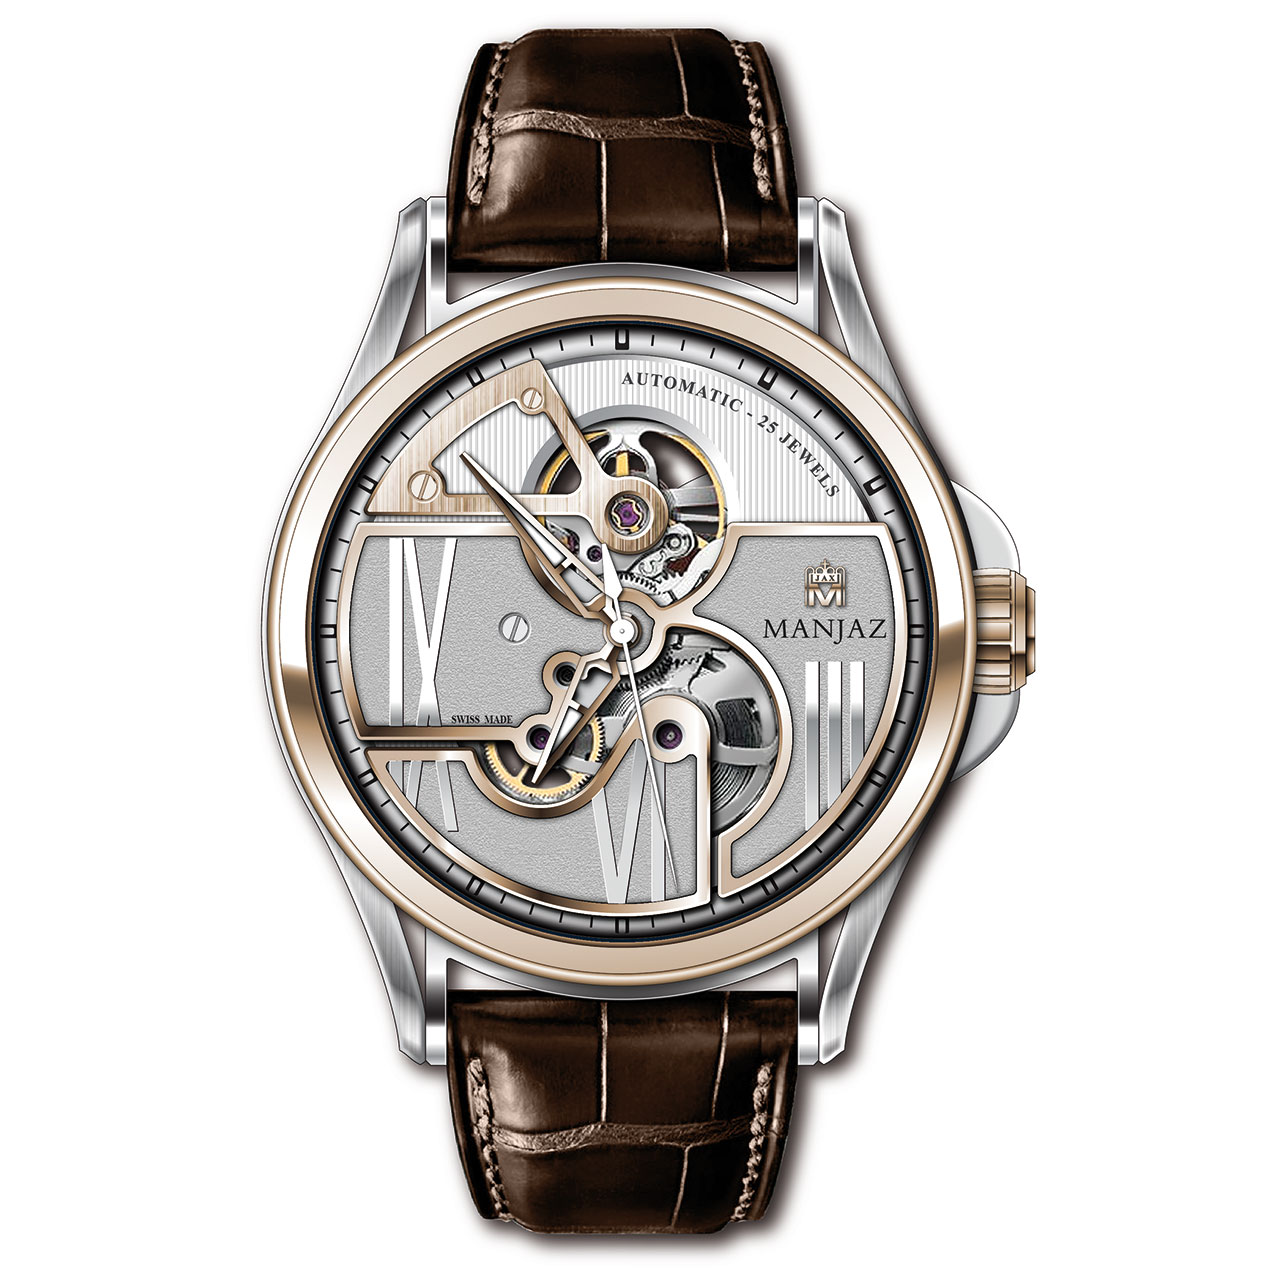 Manjaz Apollo Premium Skeleton Automatic Watch